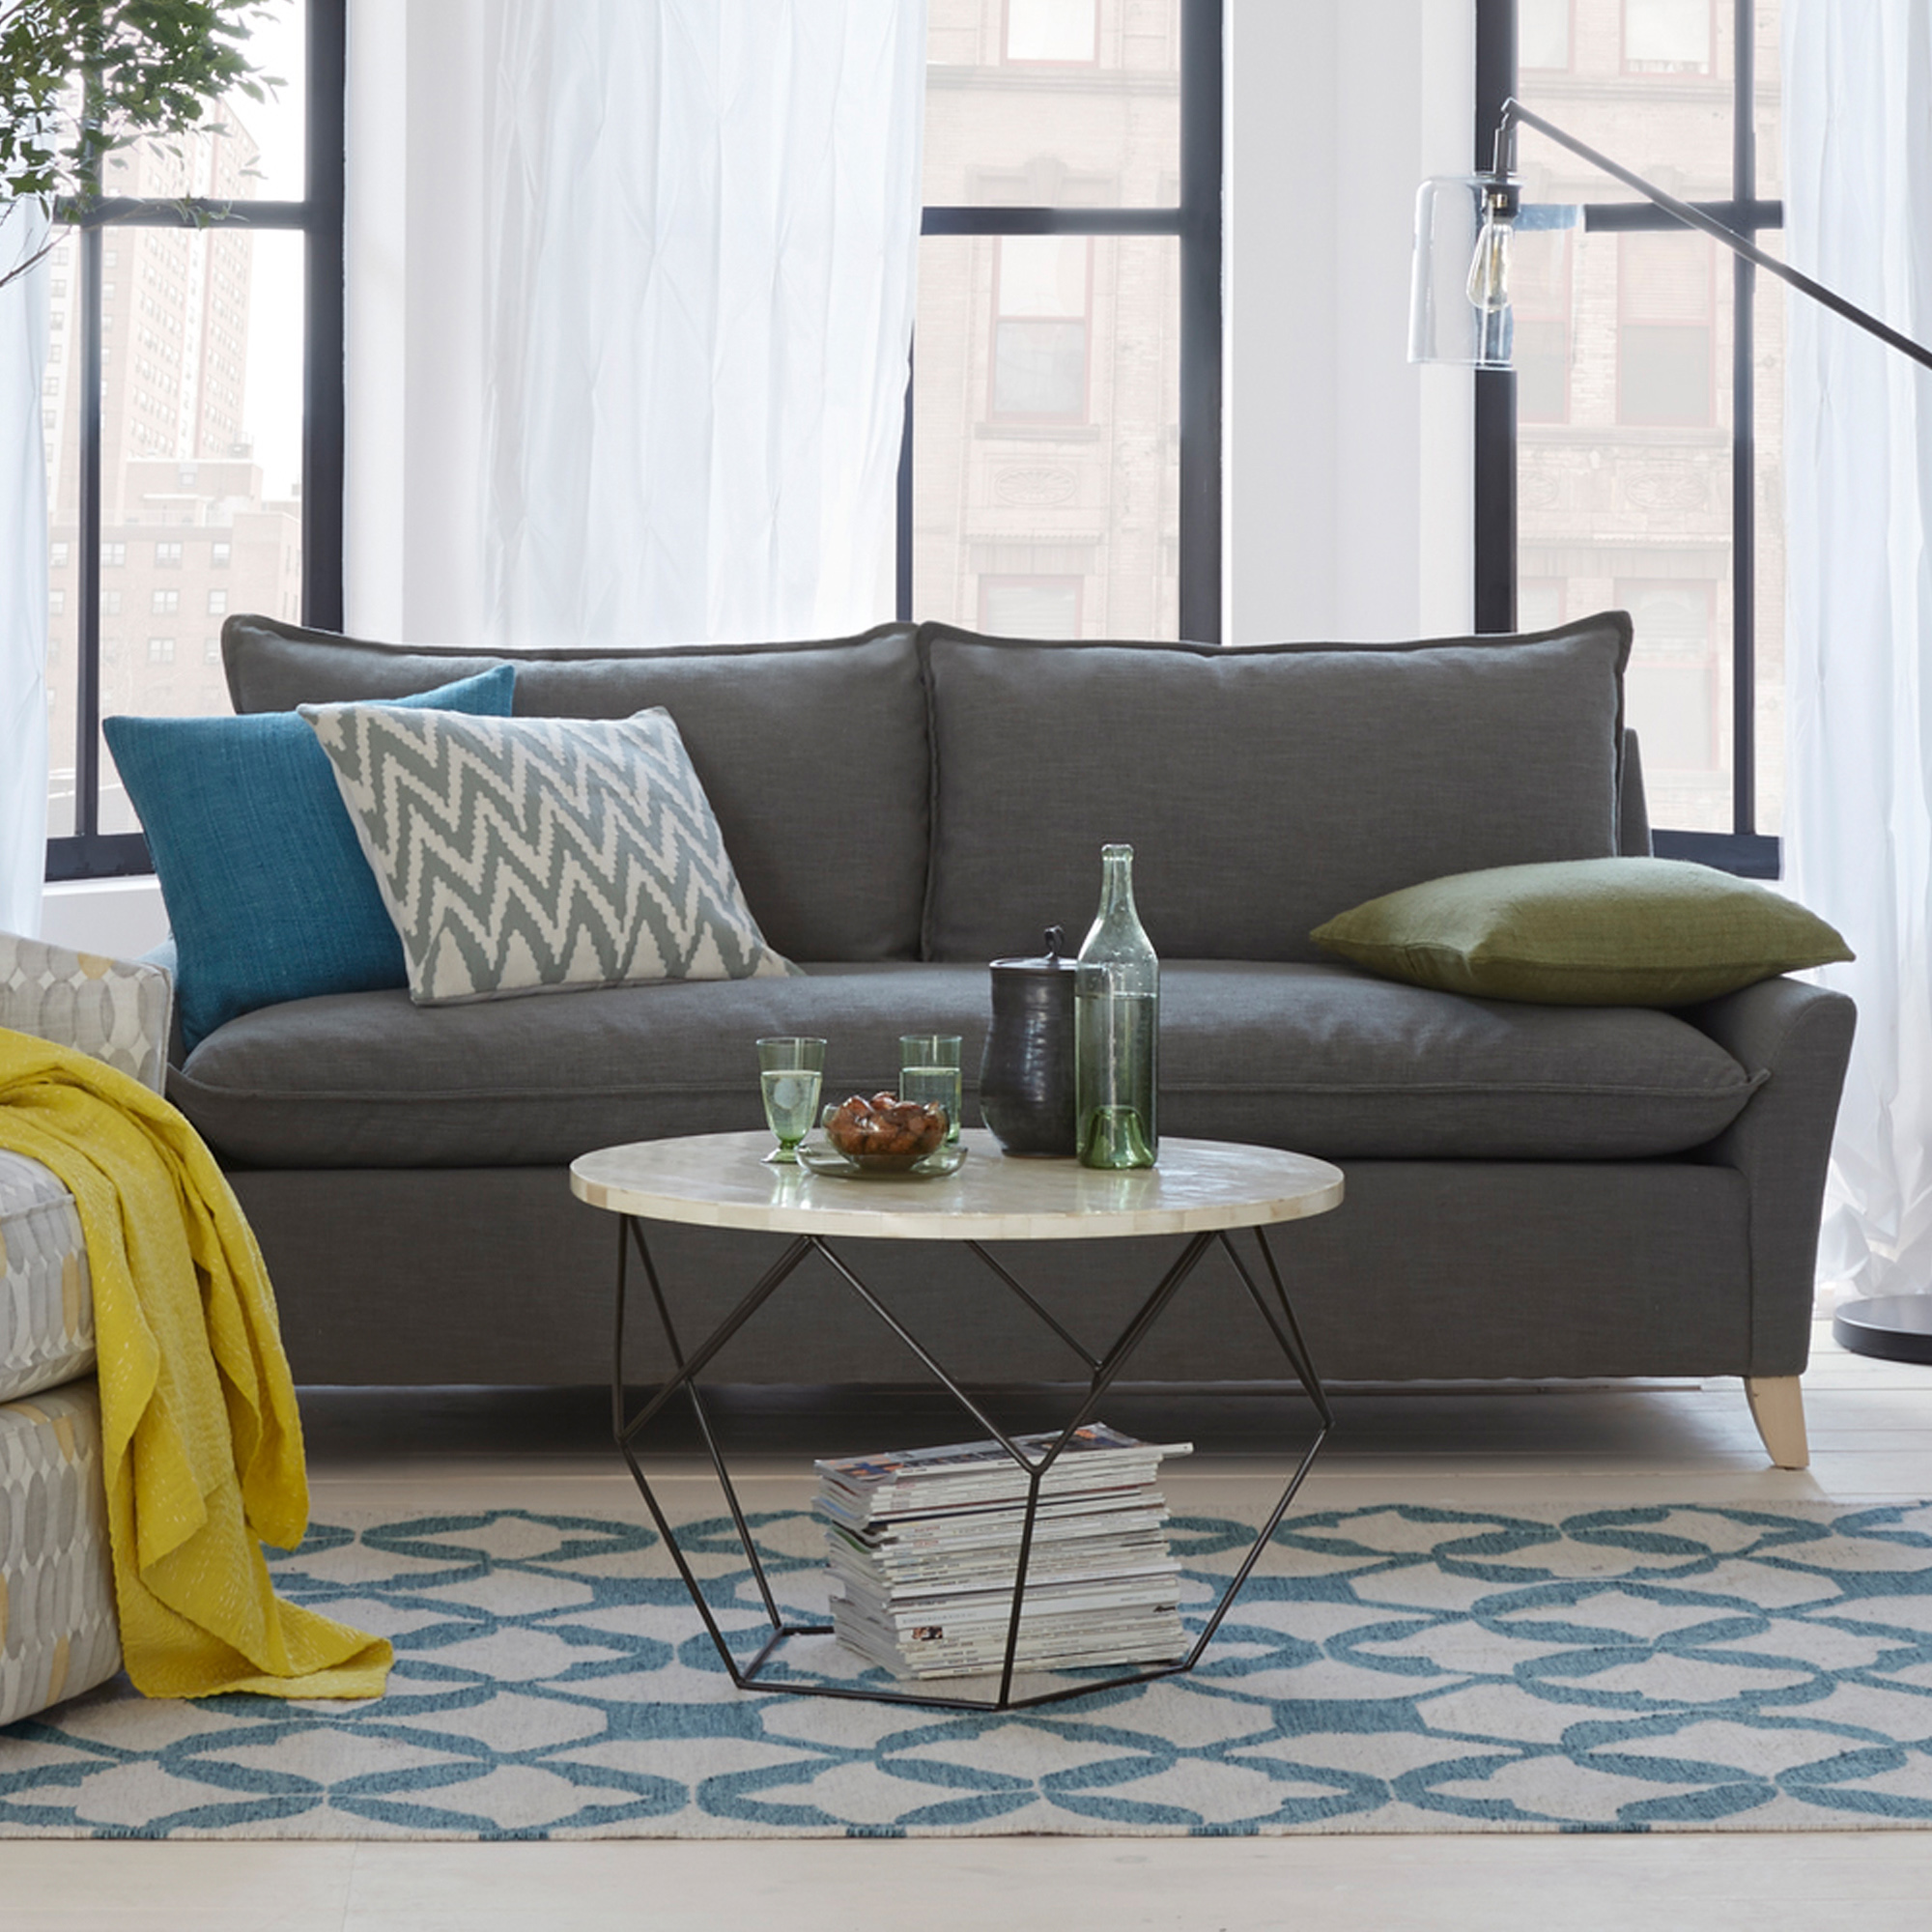 Bliss sofa-West Elm